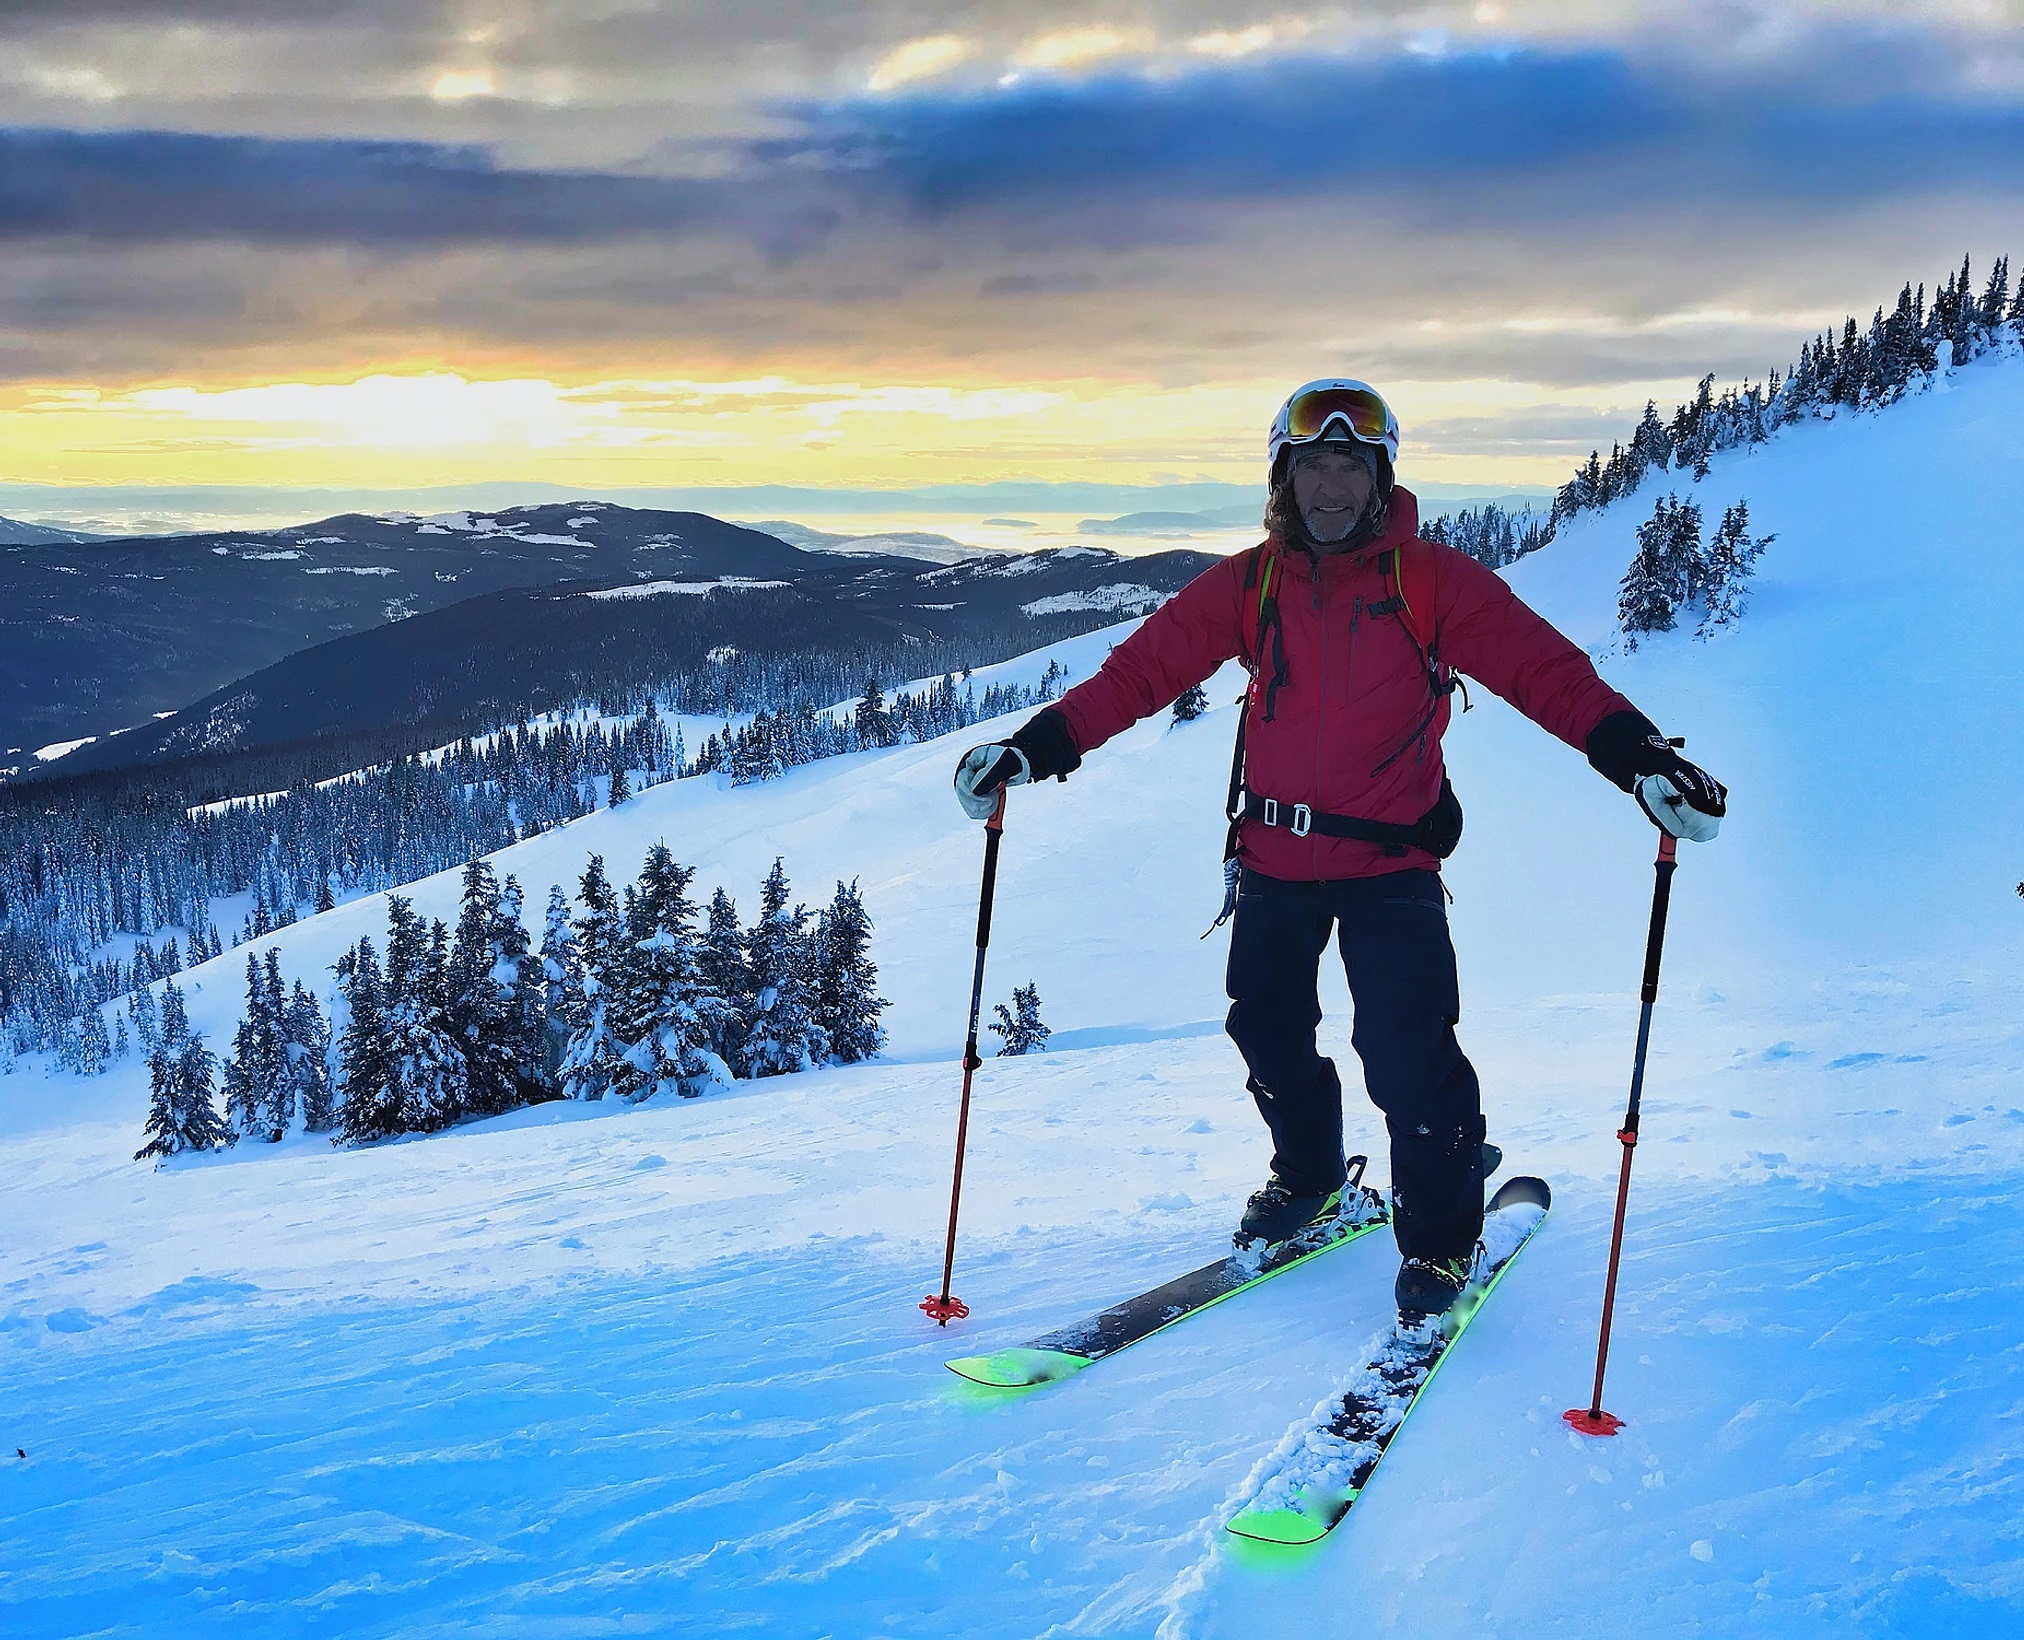 Sun Peaks Backcountry & Avalanche Safety (photo Bodie Shandro)